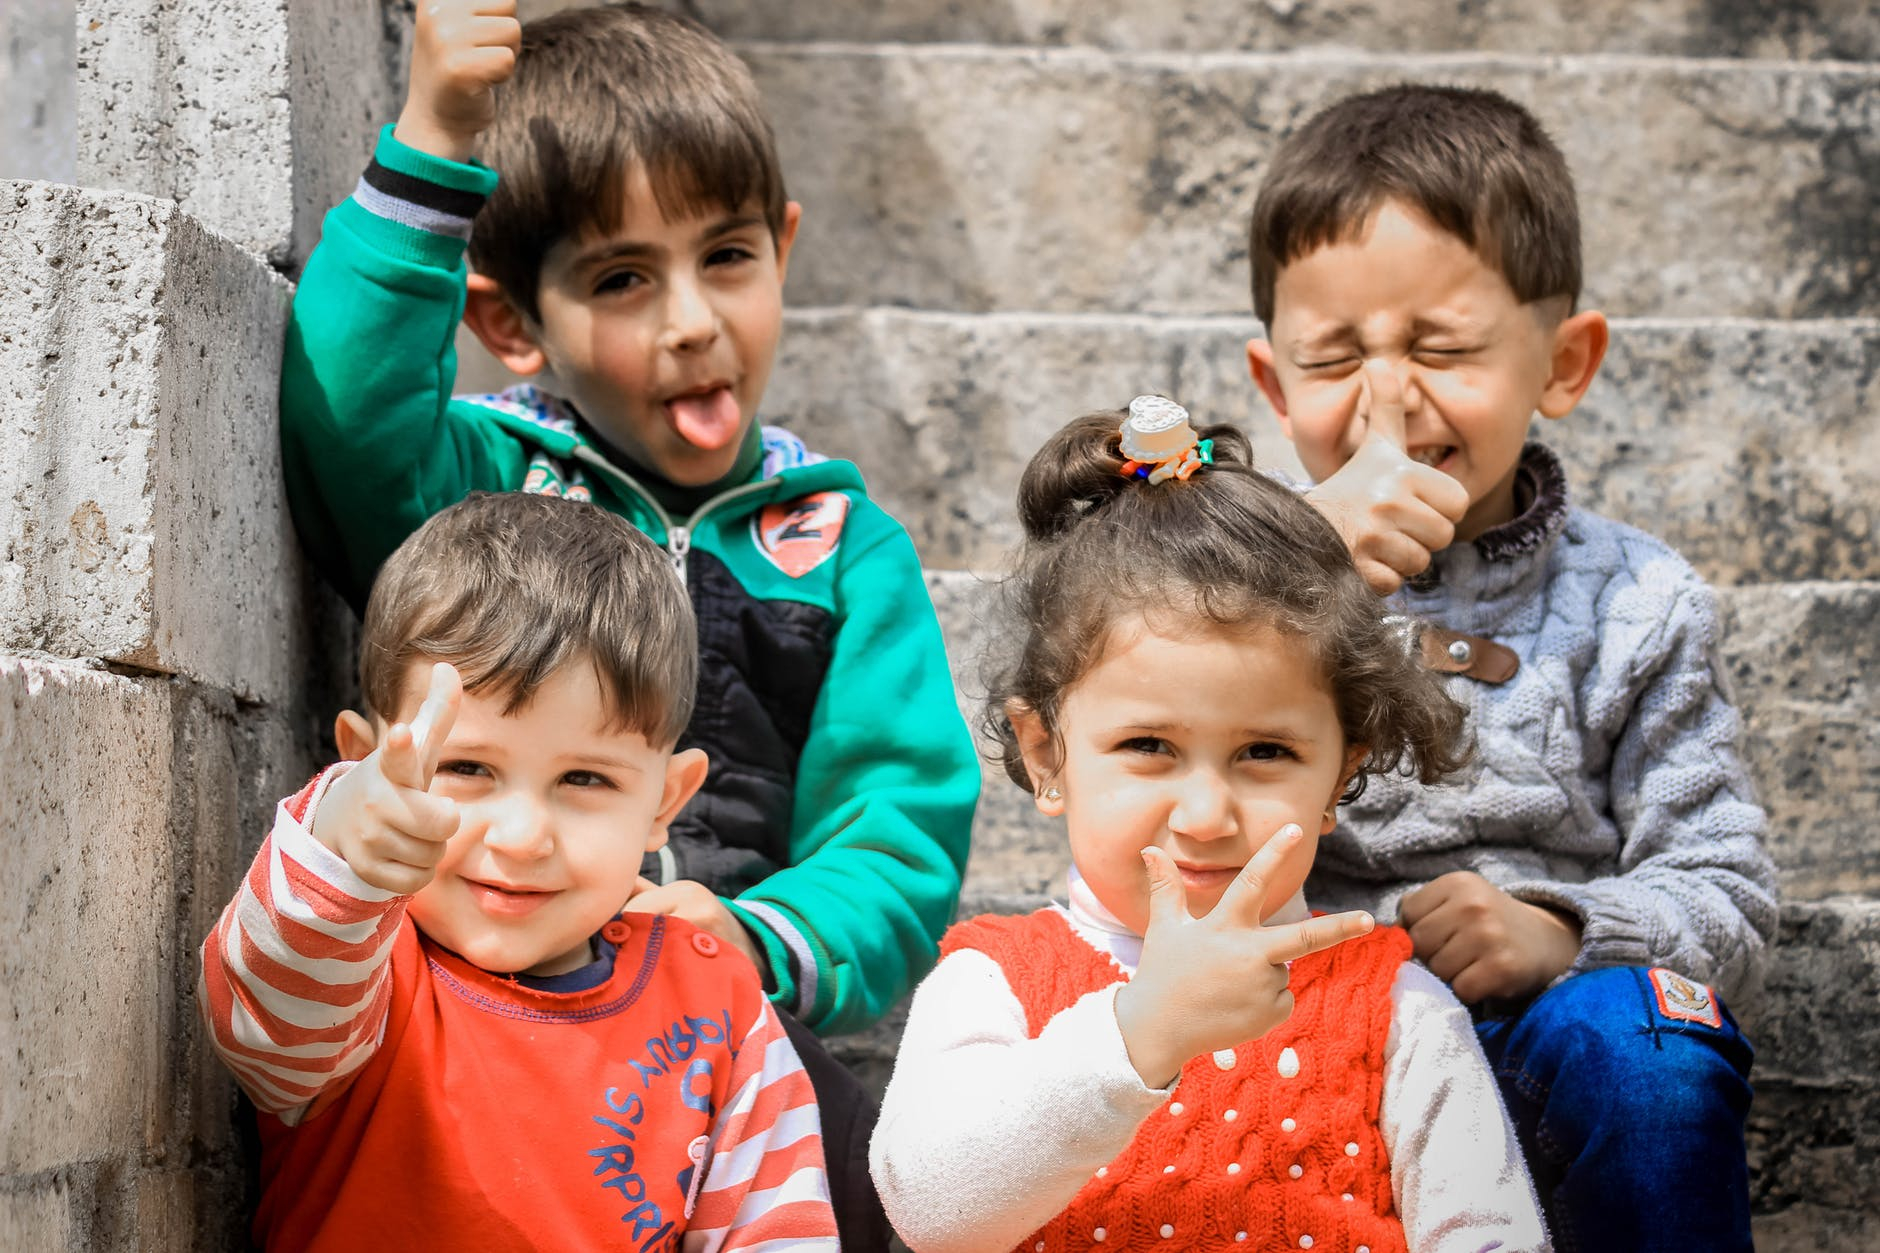 children making silly faces and showing a peace sign with fingers